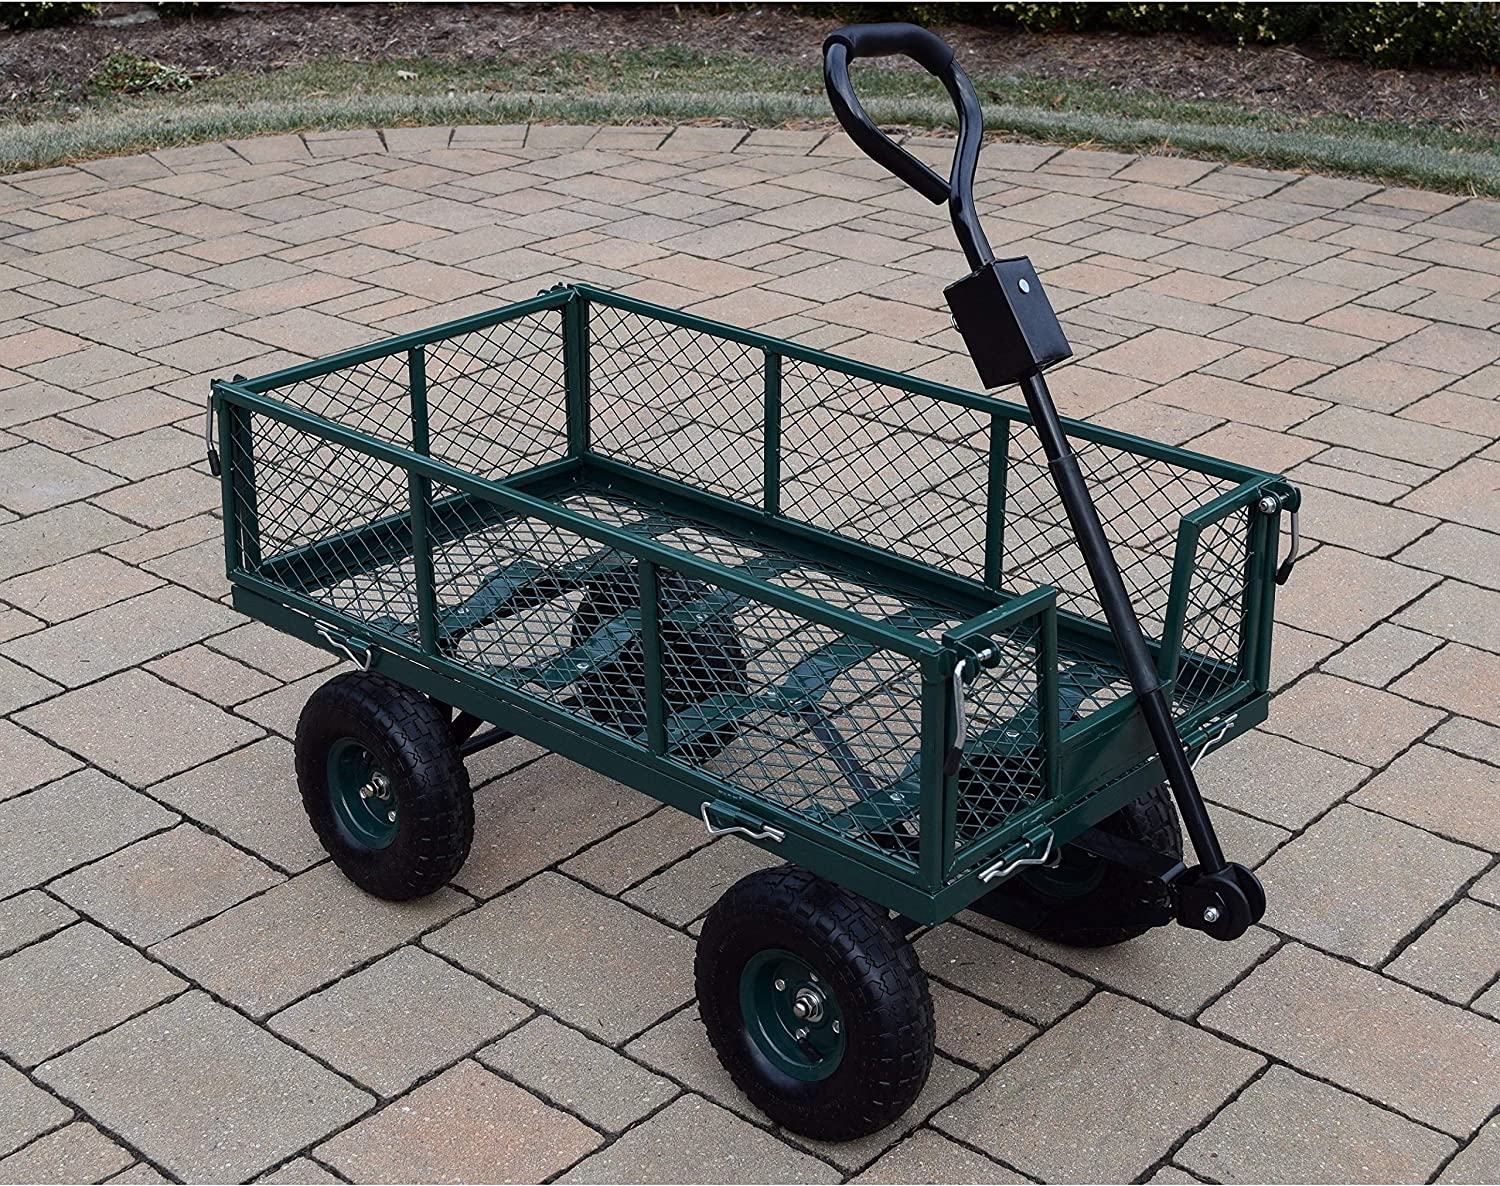 Oakland New product type Ranking TOP2 Living Corporation 450 lb Garden Cart Weight Capacity wi